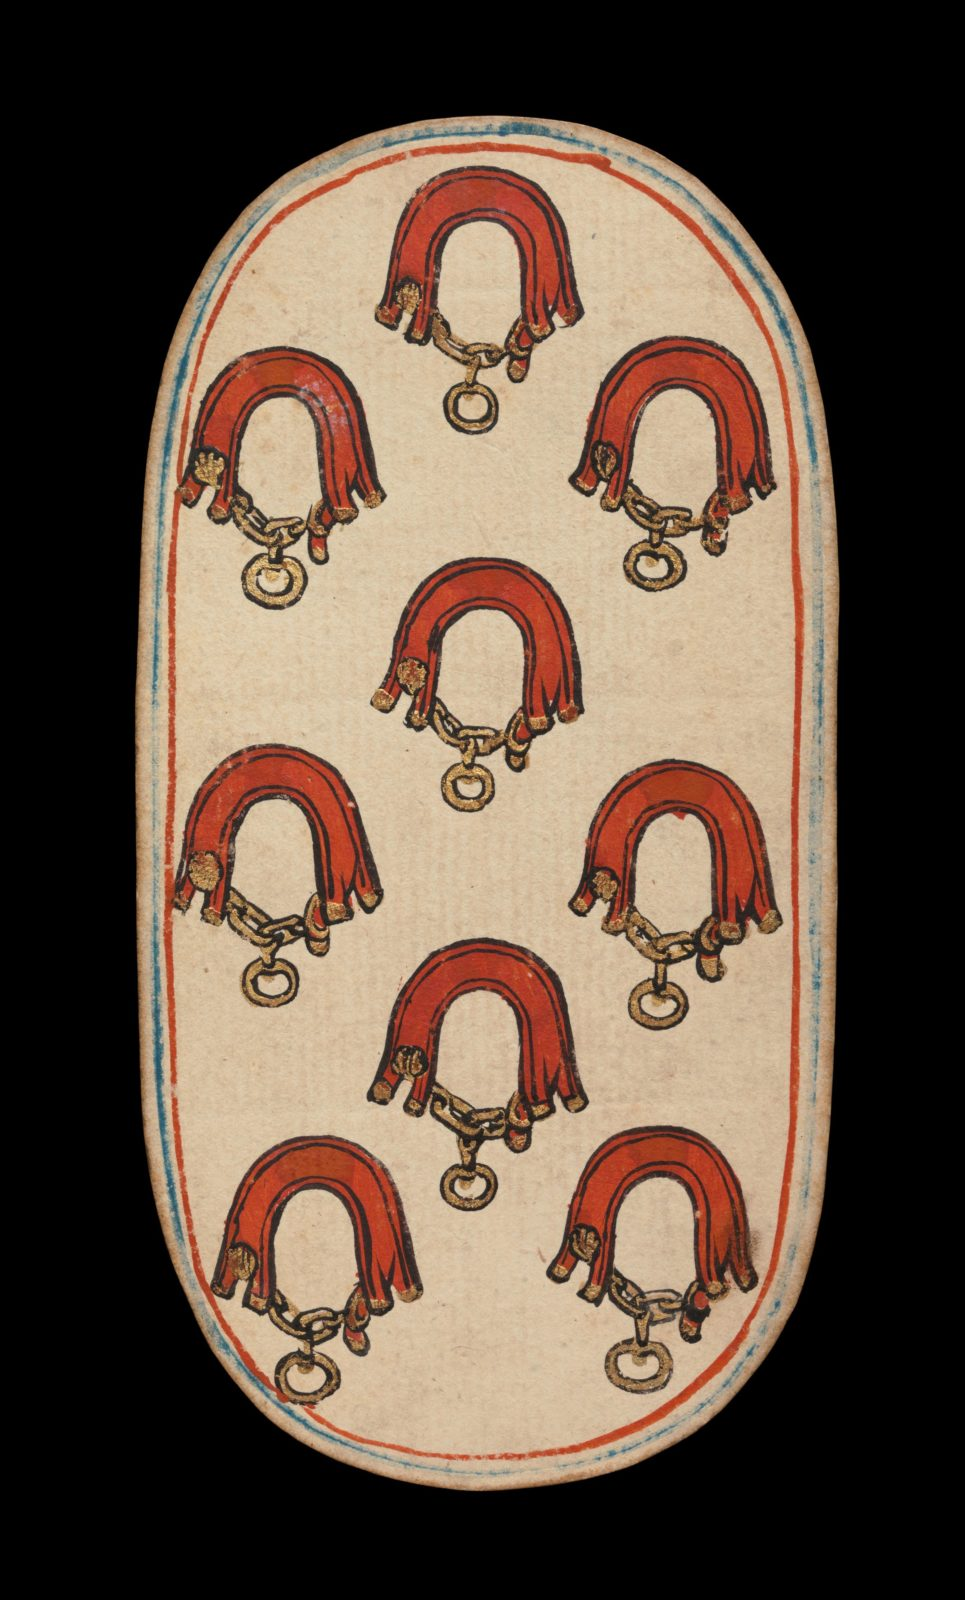 9 of Collars, from The Cloisters Playing Cards